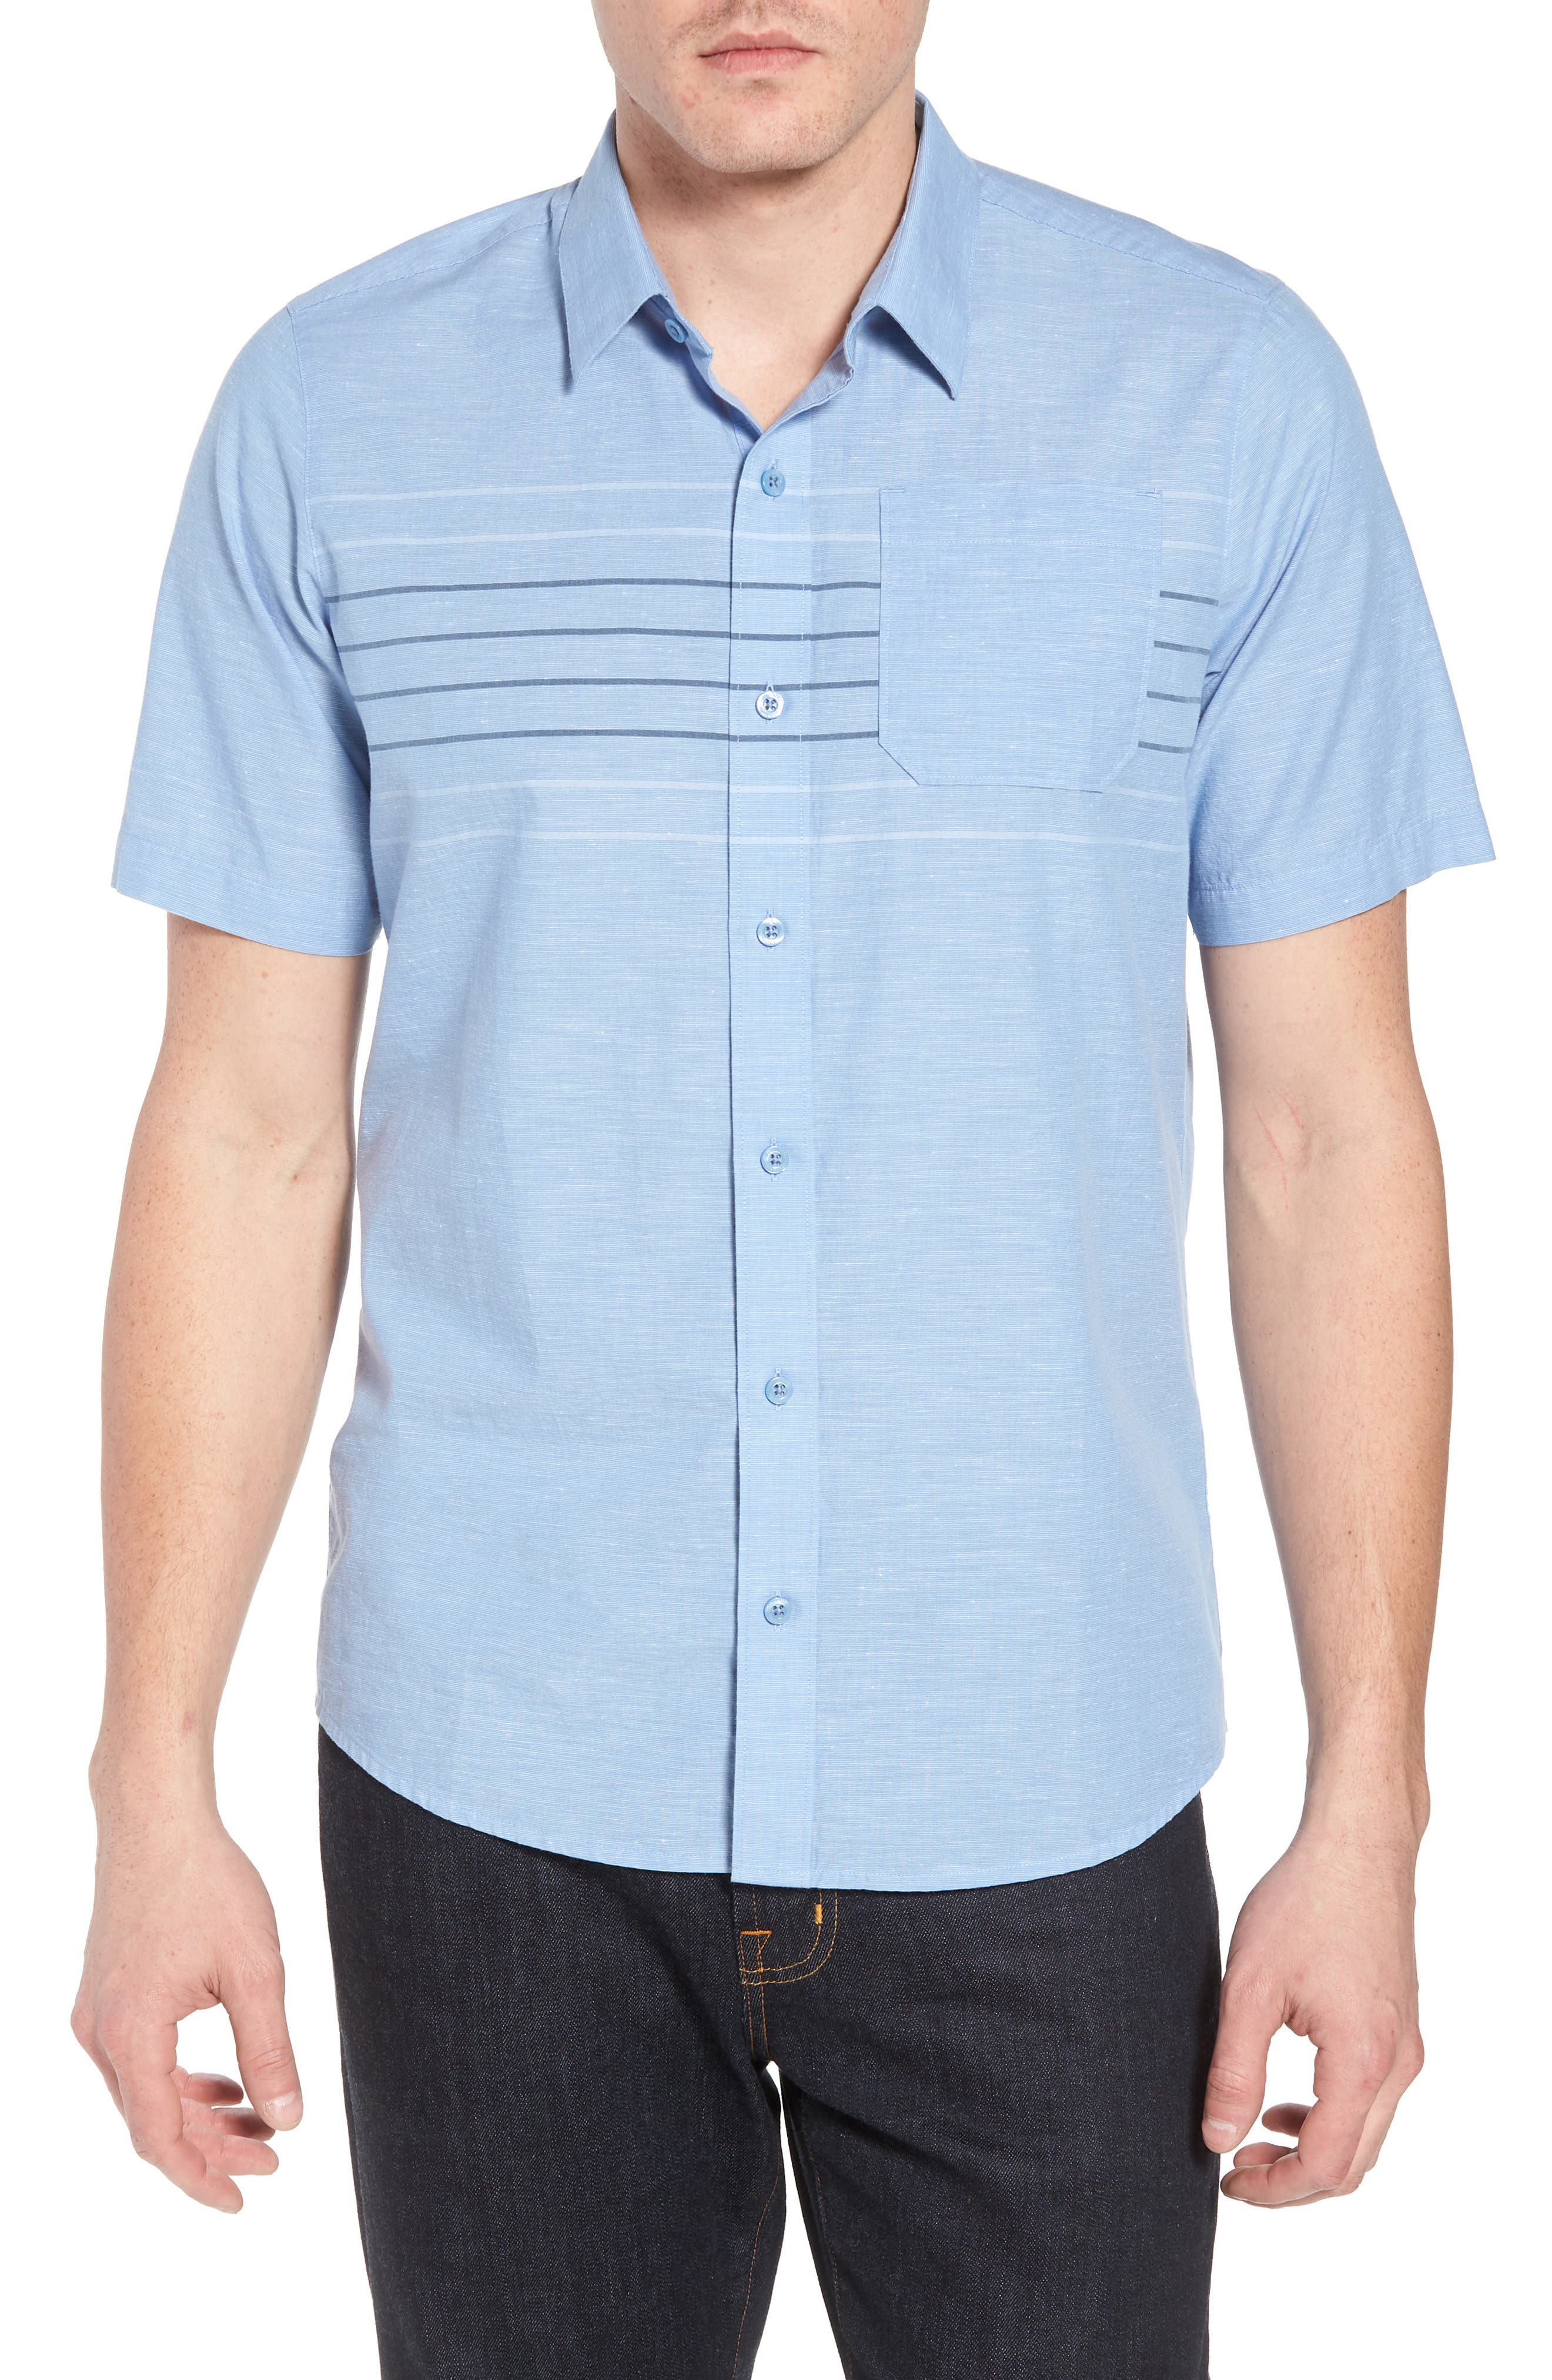 Canal Street Sport Shirt,                         Main,                         color, Heather Allure